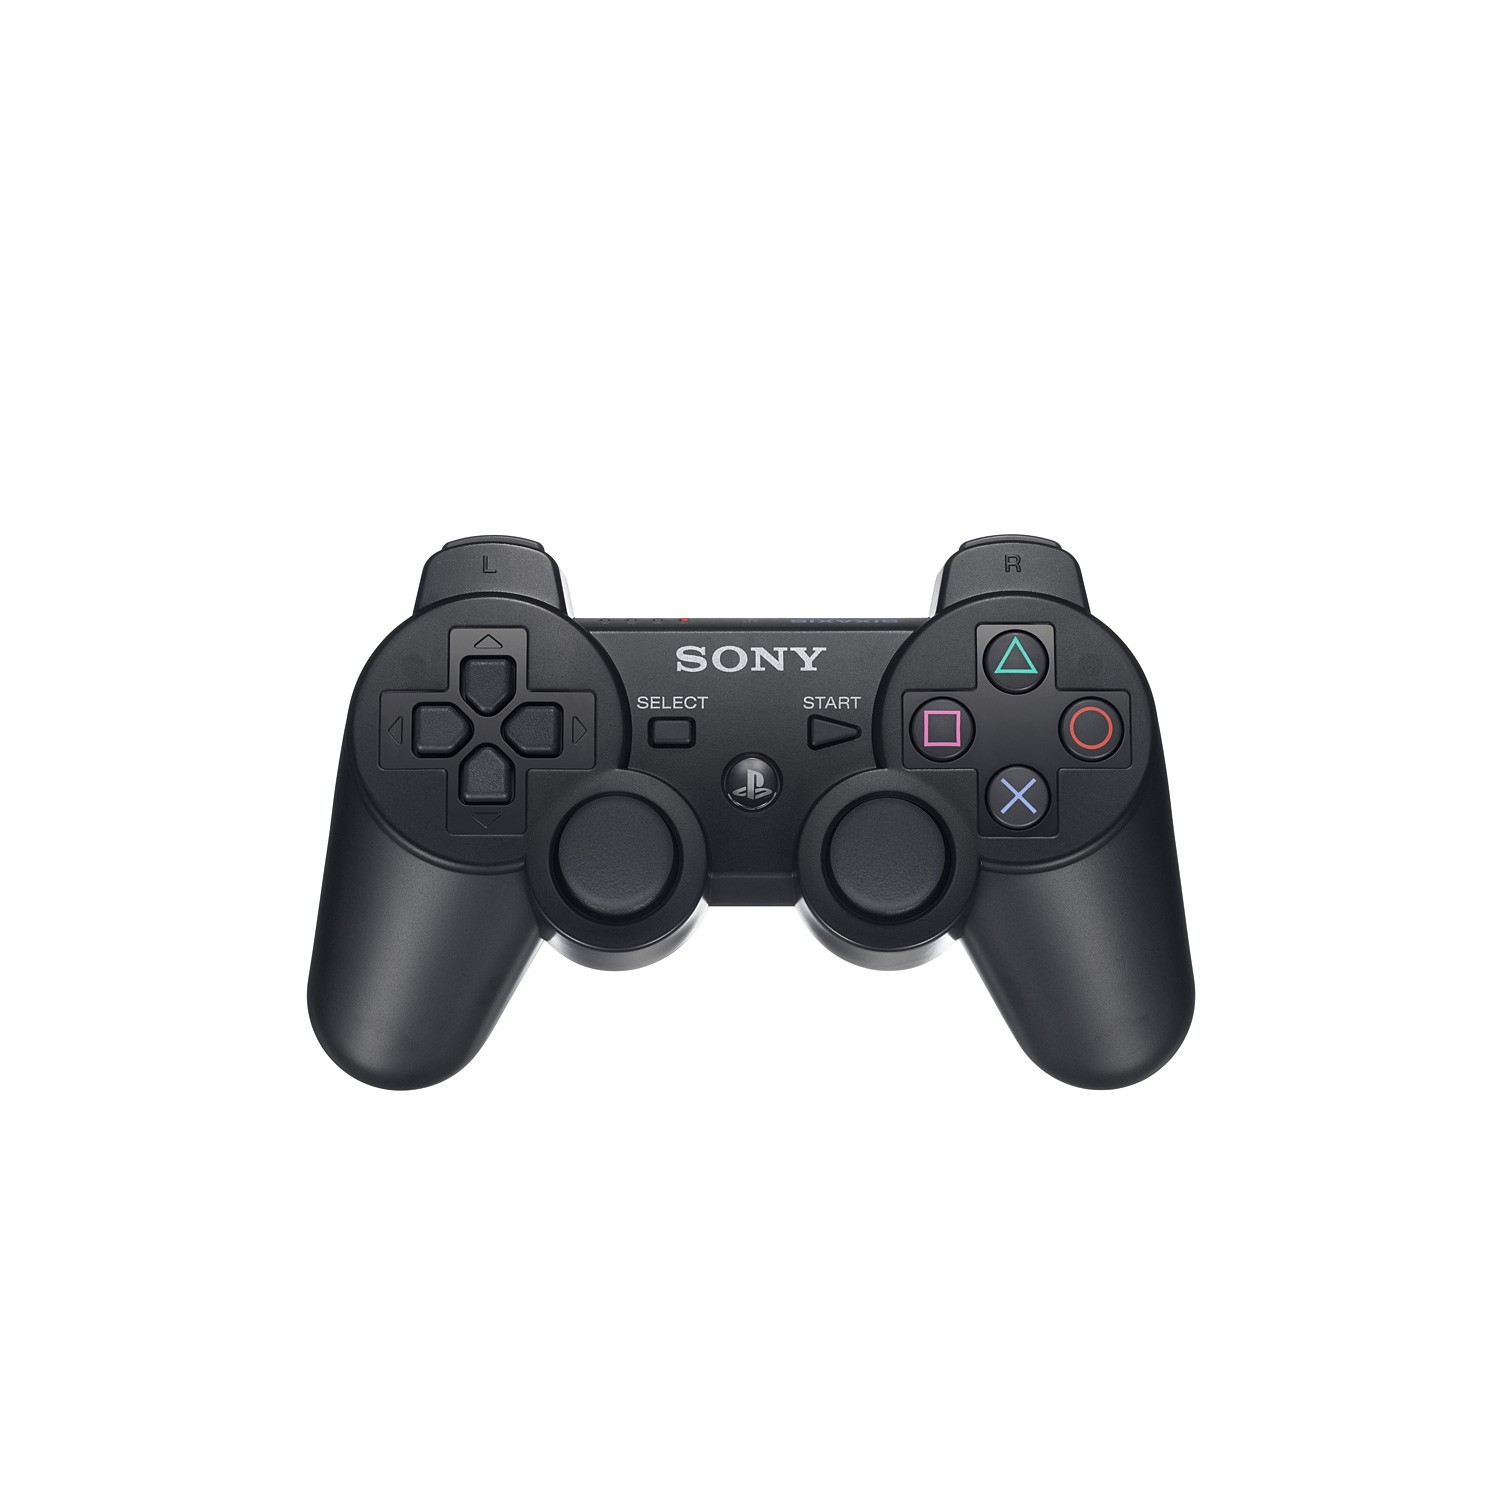 six axis dualshock wireless controller for playstation 3. Black Bedroom Furniture Sets. Home Design Ideas